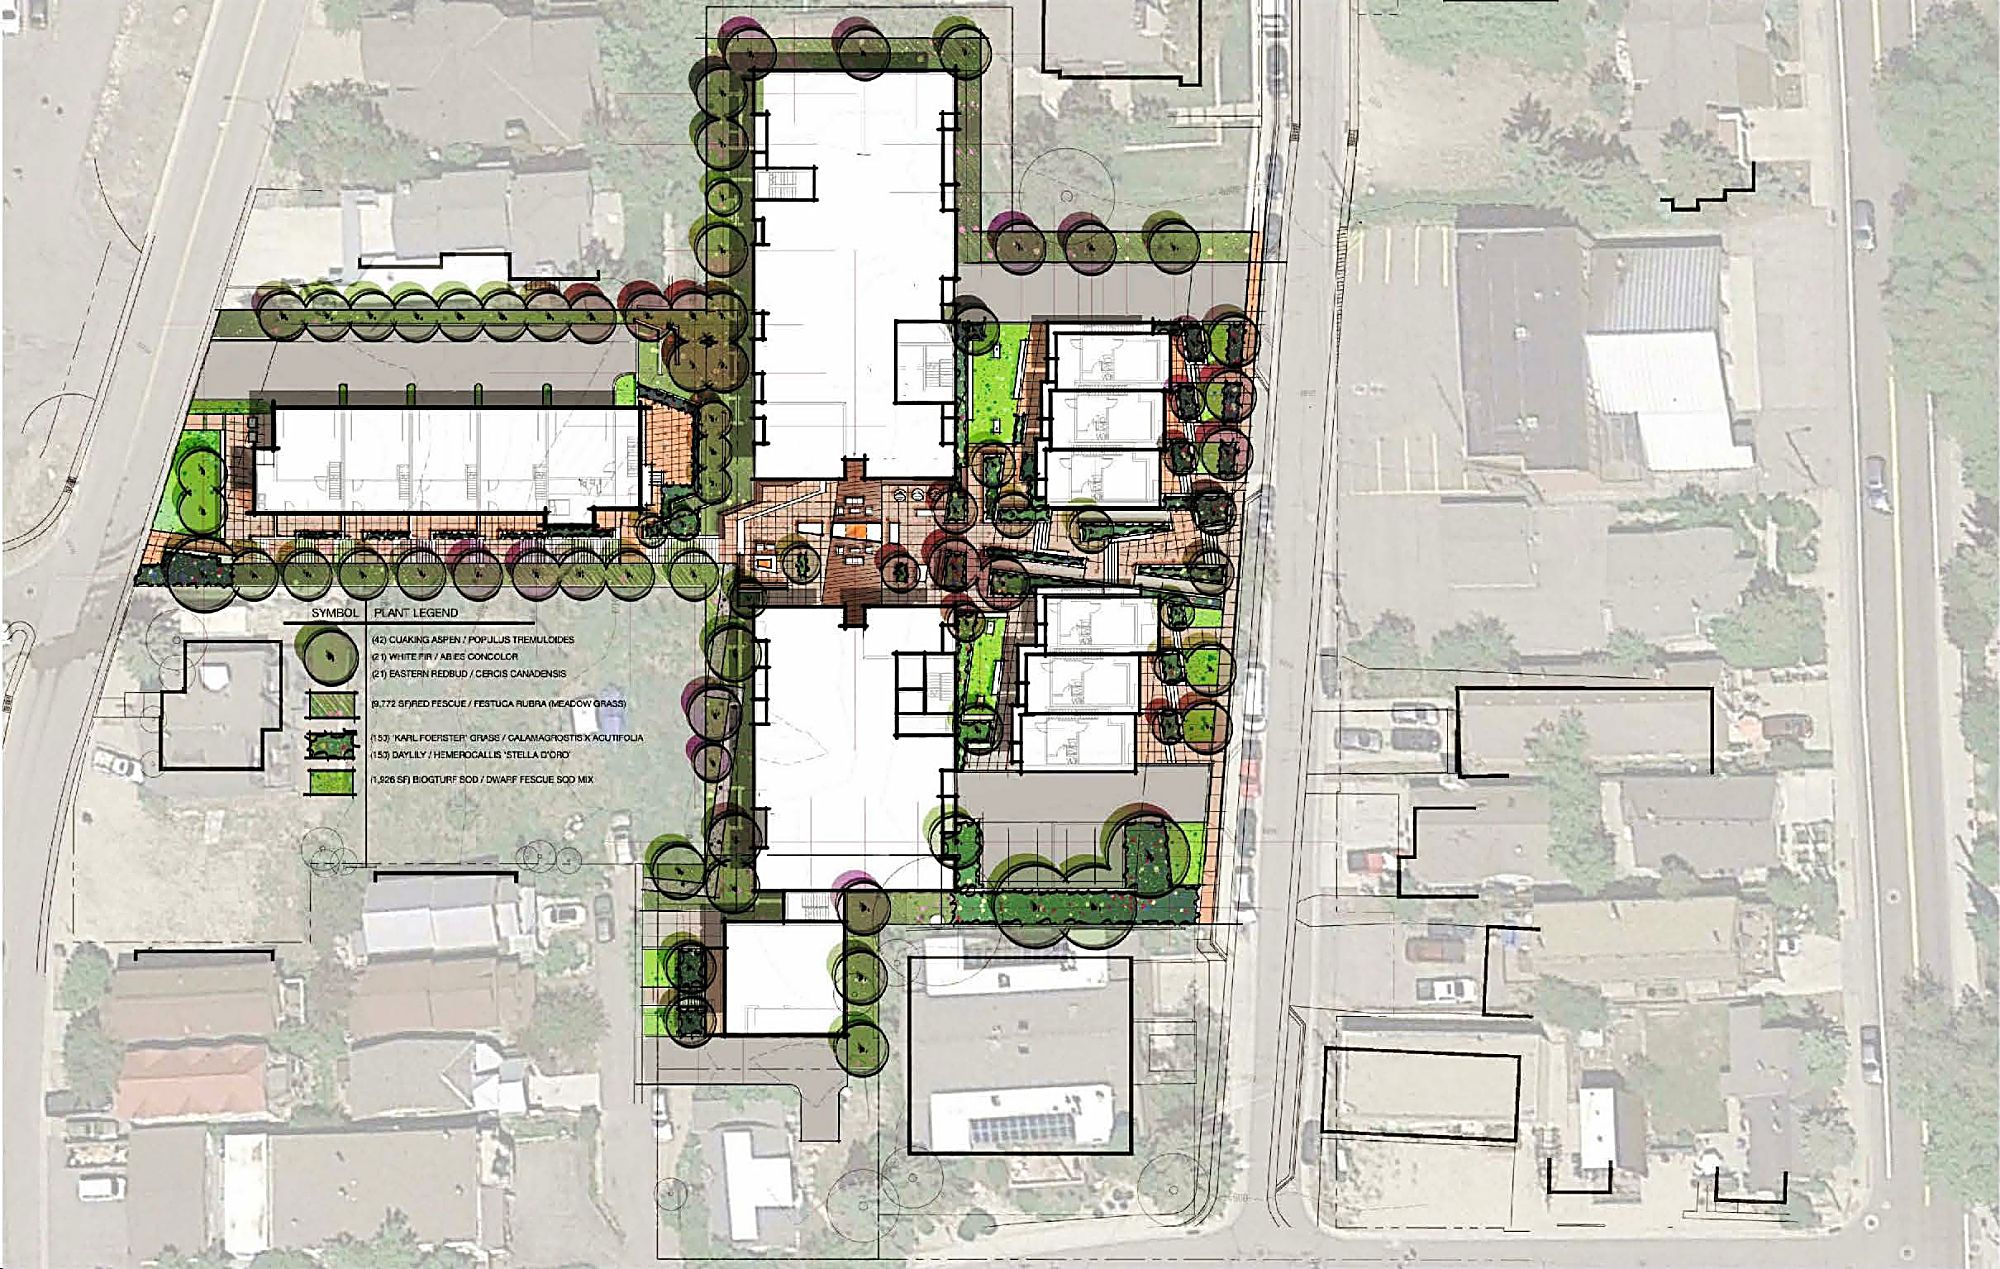 Park City, now the developer, urged to 'pay more than lip service' to rules